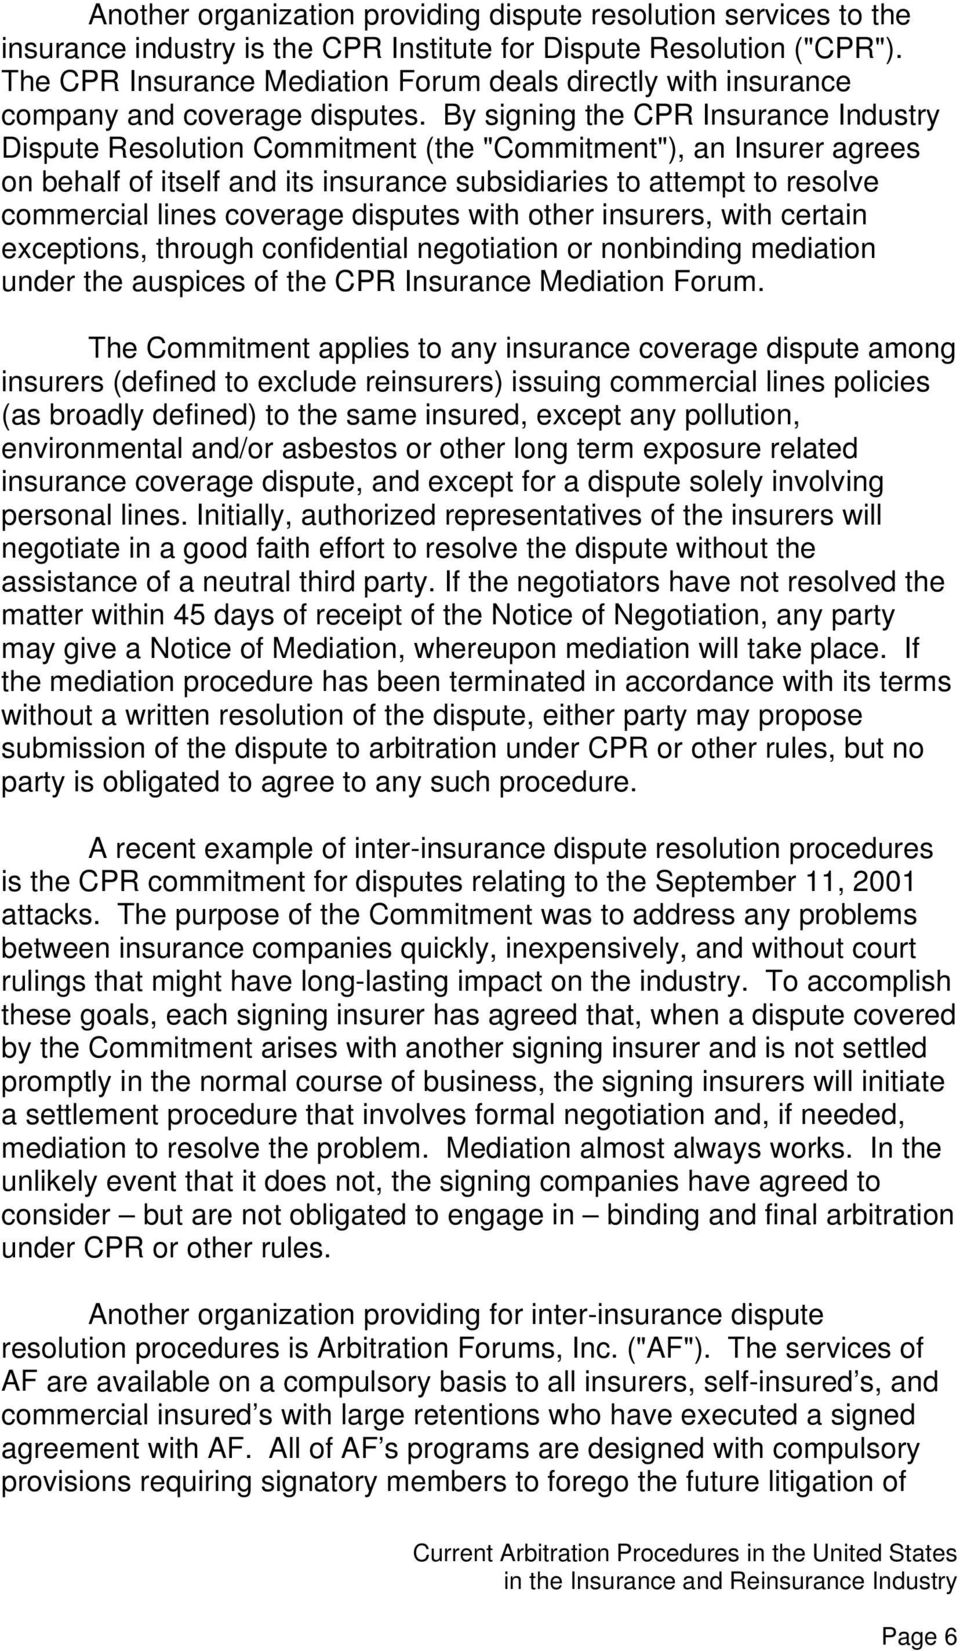 "By signing the CPR Insurance Industry Dispute Resolution Commitment (the ""Commitment""), an Insurer agrees on behalf of itself and its insurance subsidiaries to attempt to resolve commercial lines"